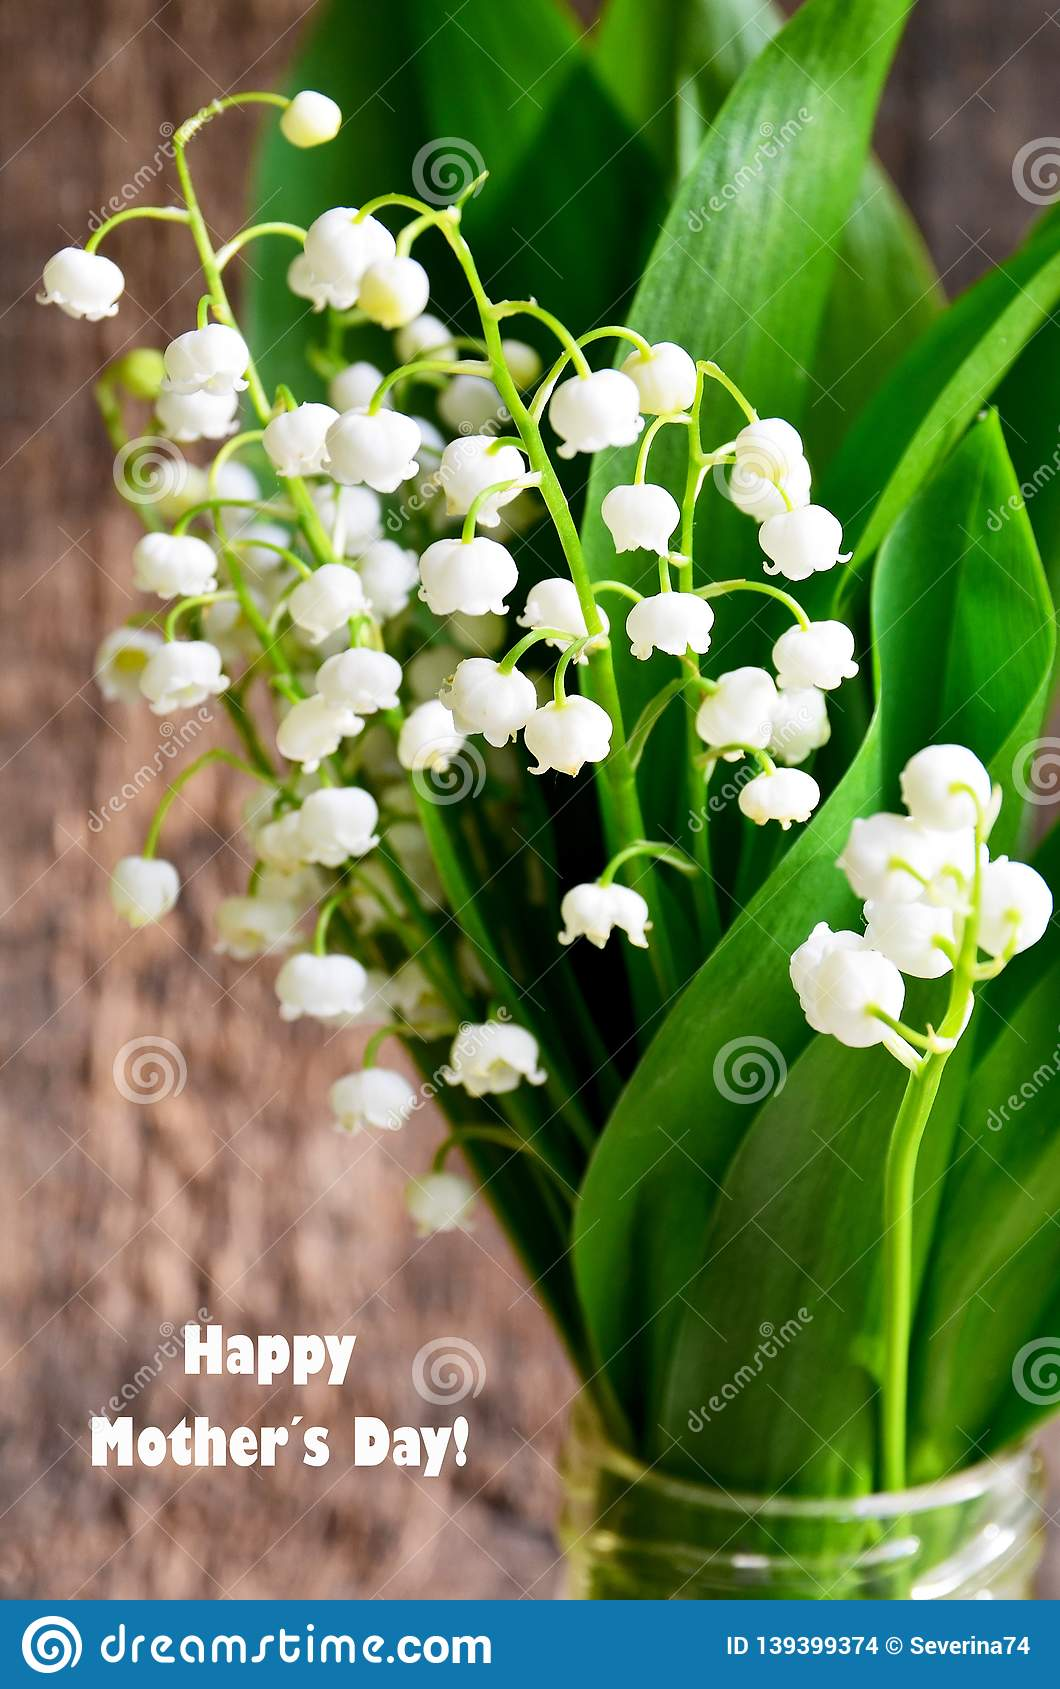 Bouquet Of Lilies Of The Valley On Old Wooden Background.Lily Of The Valley  Spring Flowers.Concept For Mother´s Day. Stock Photo - Image of  composition, decoration: 139399374